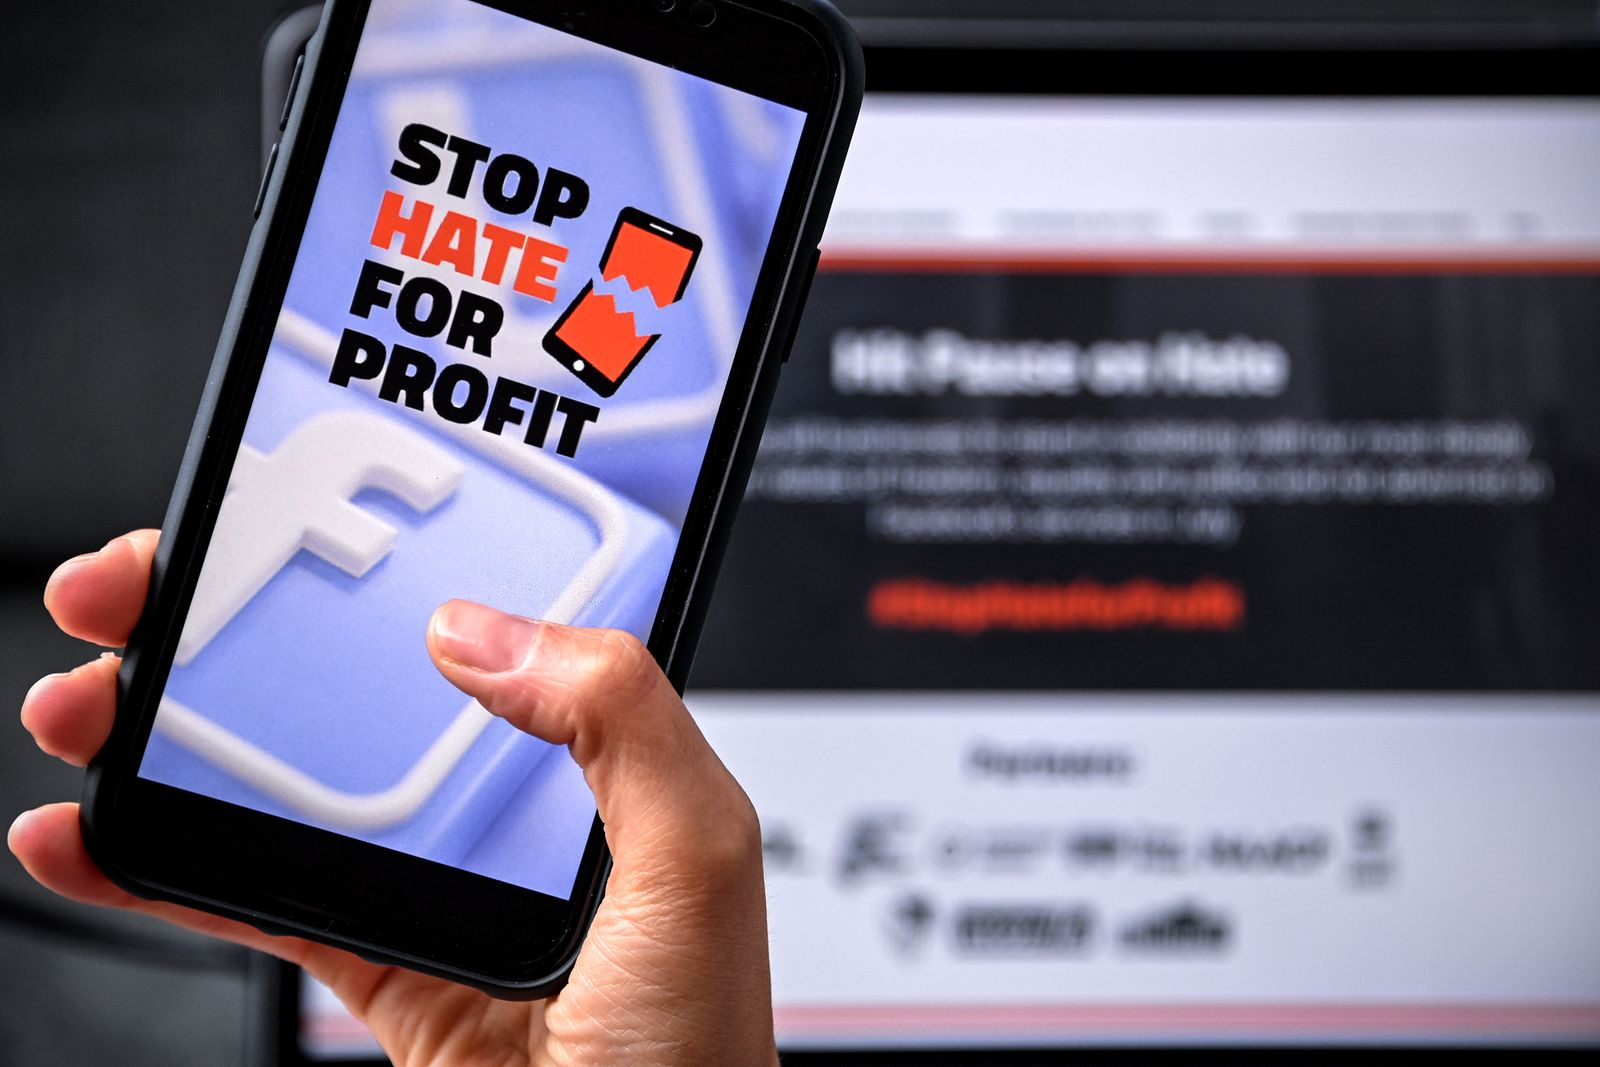 Stop Hate For Profit: Advertising boycott against Facebook, Cologne, Germany - 29 Jun 2020